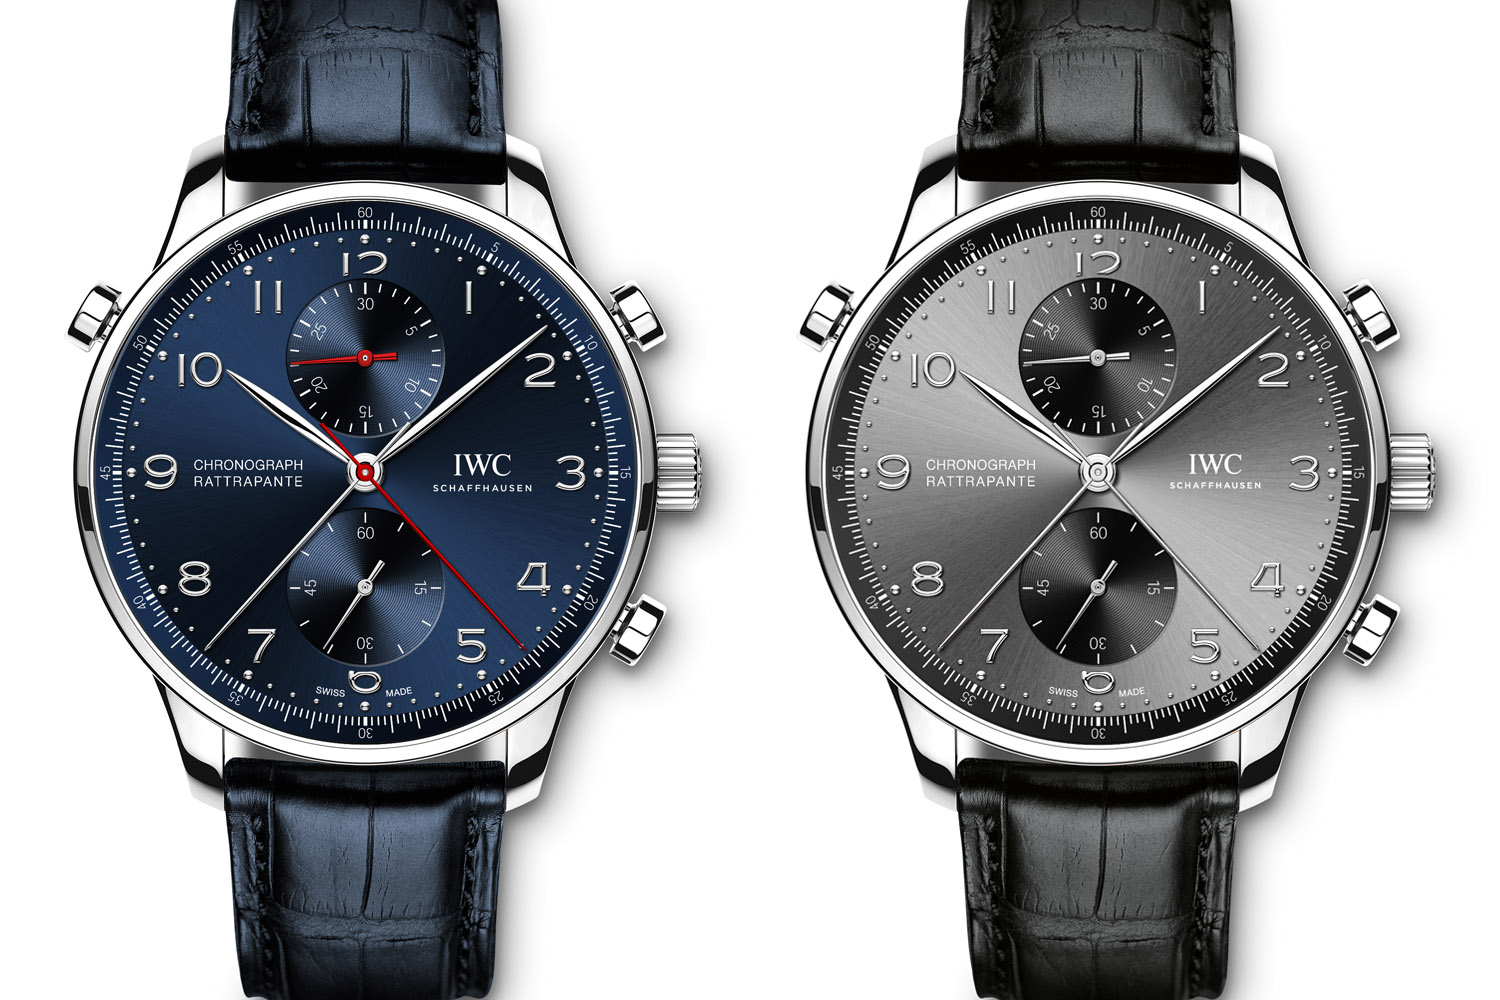 IWC Portugieser Chronograph Rattrapante Edition Boutique Munich and Rue de la Paix